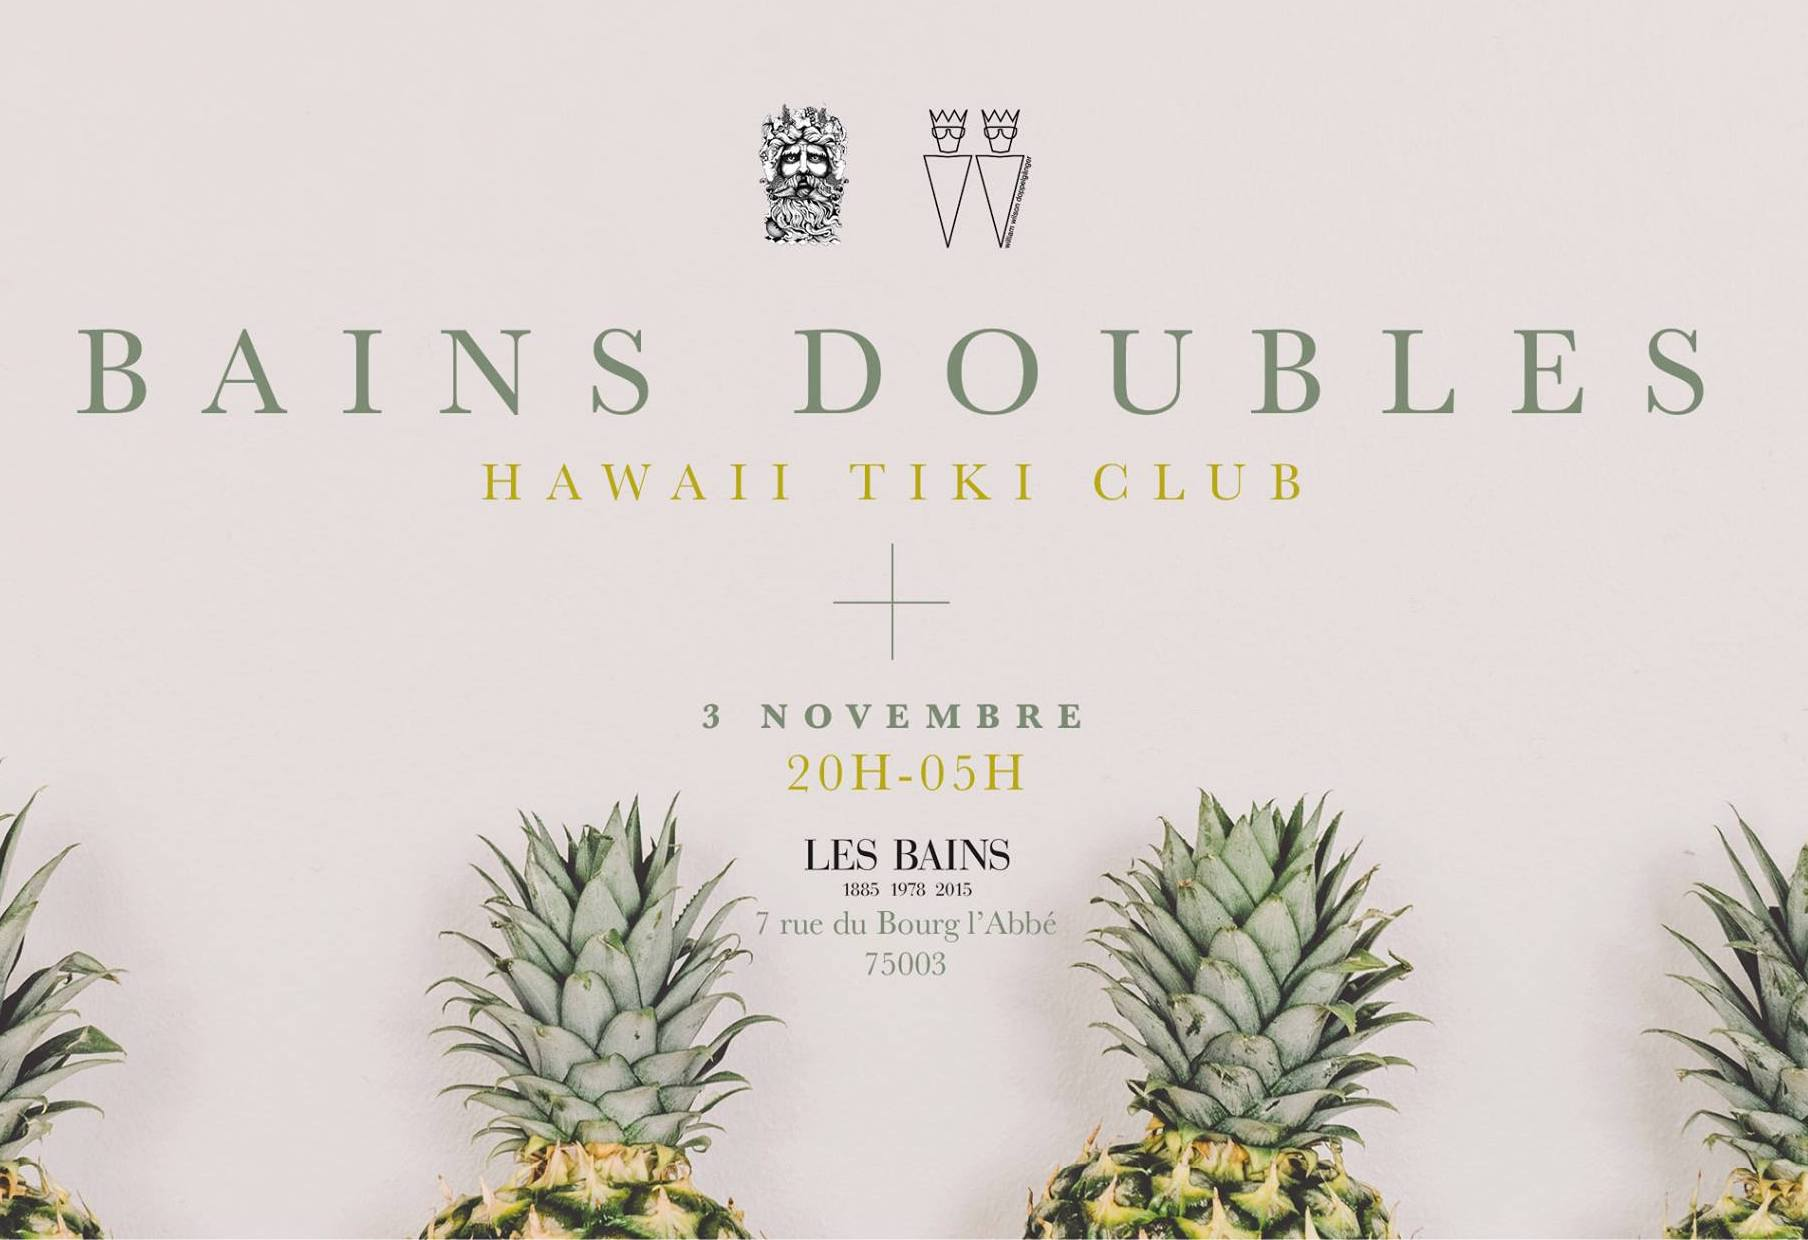 Invitations for the Hawaii Tiki Club party at Les Bains – November 3rd